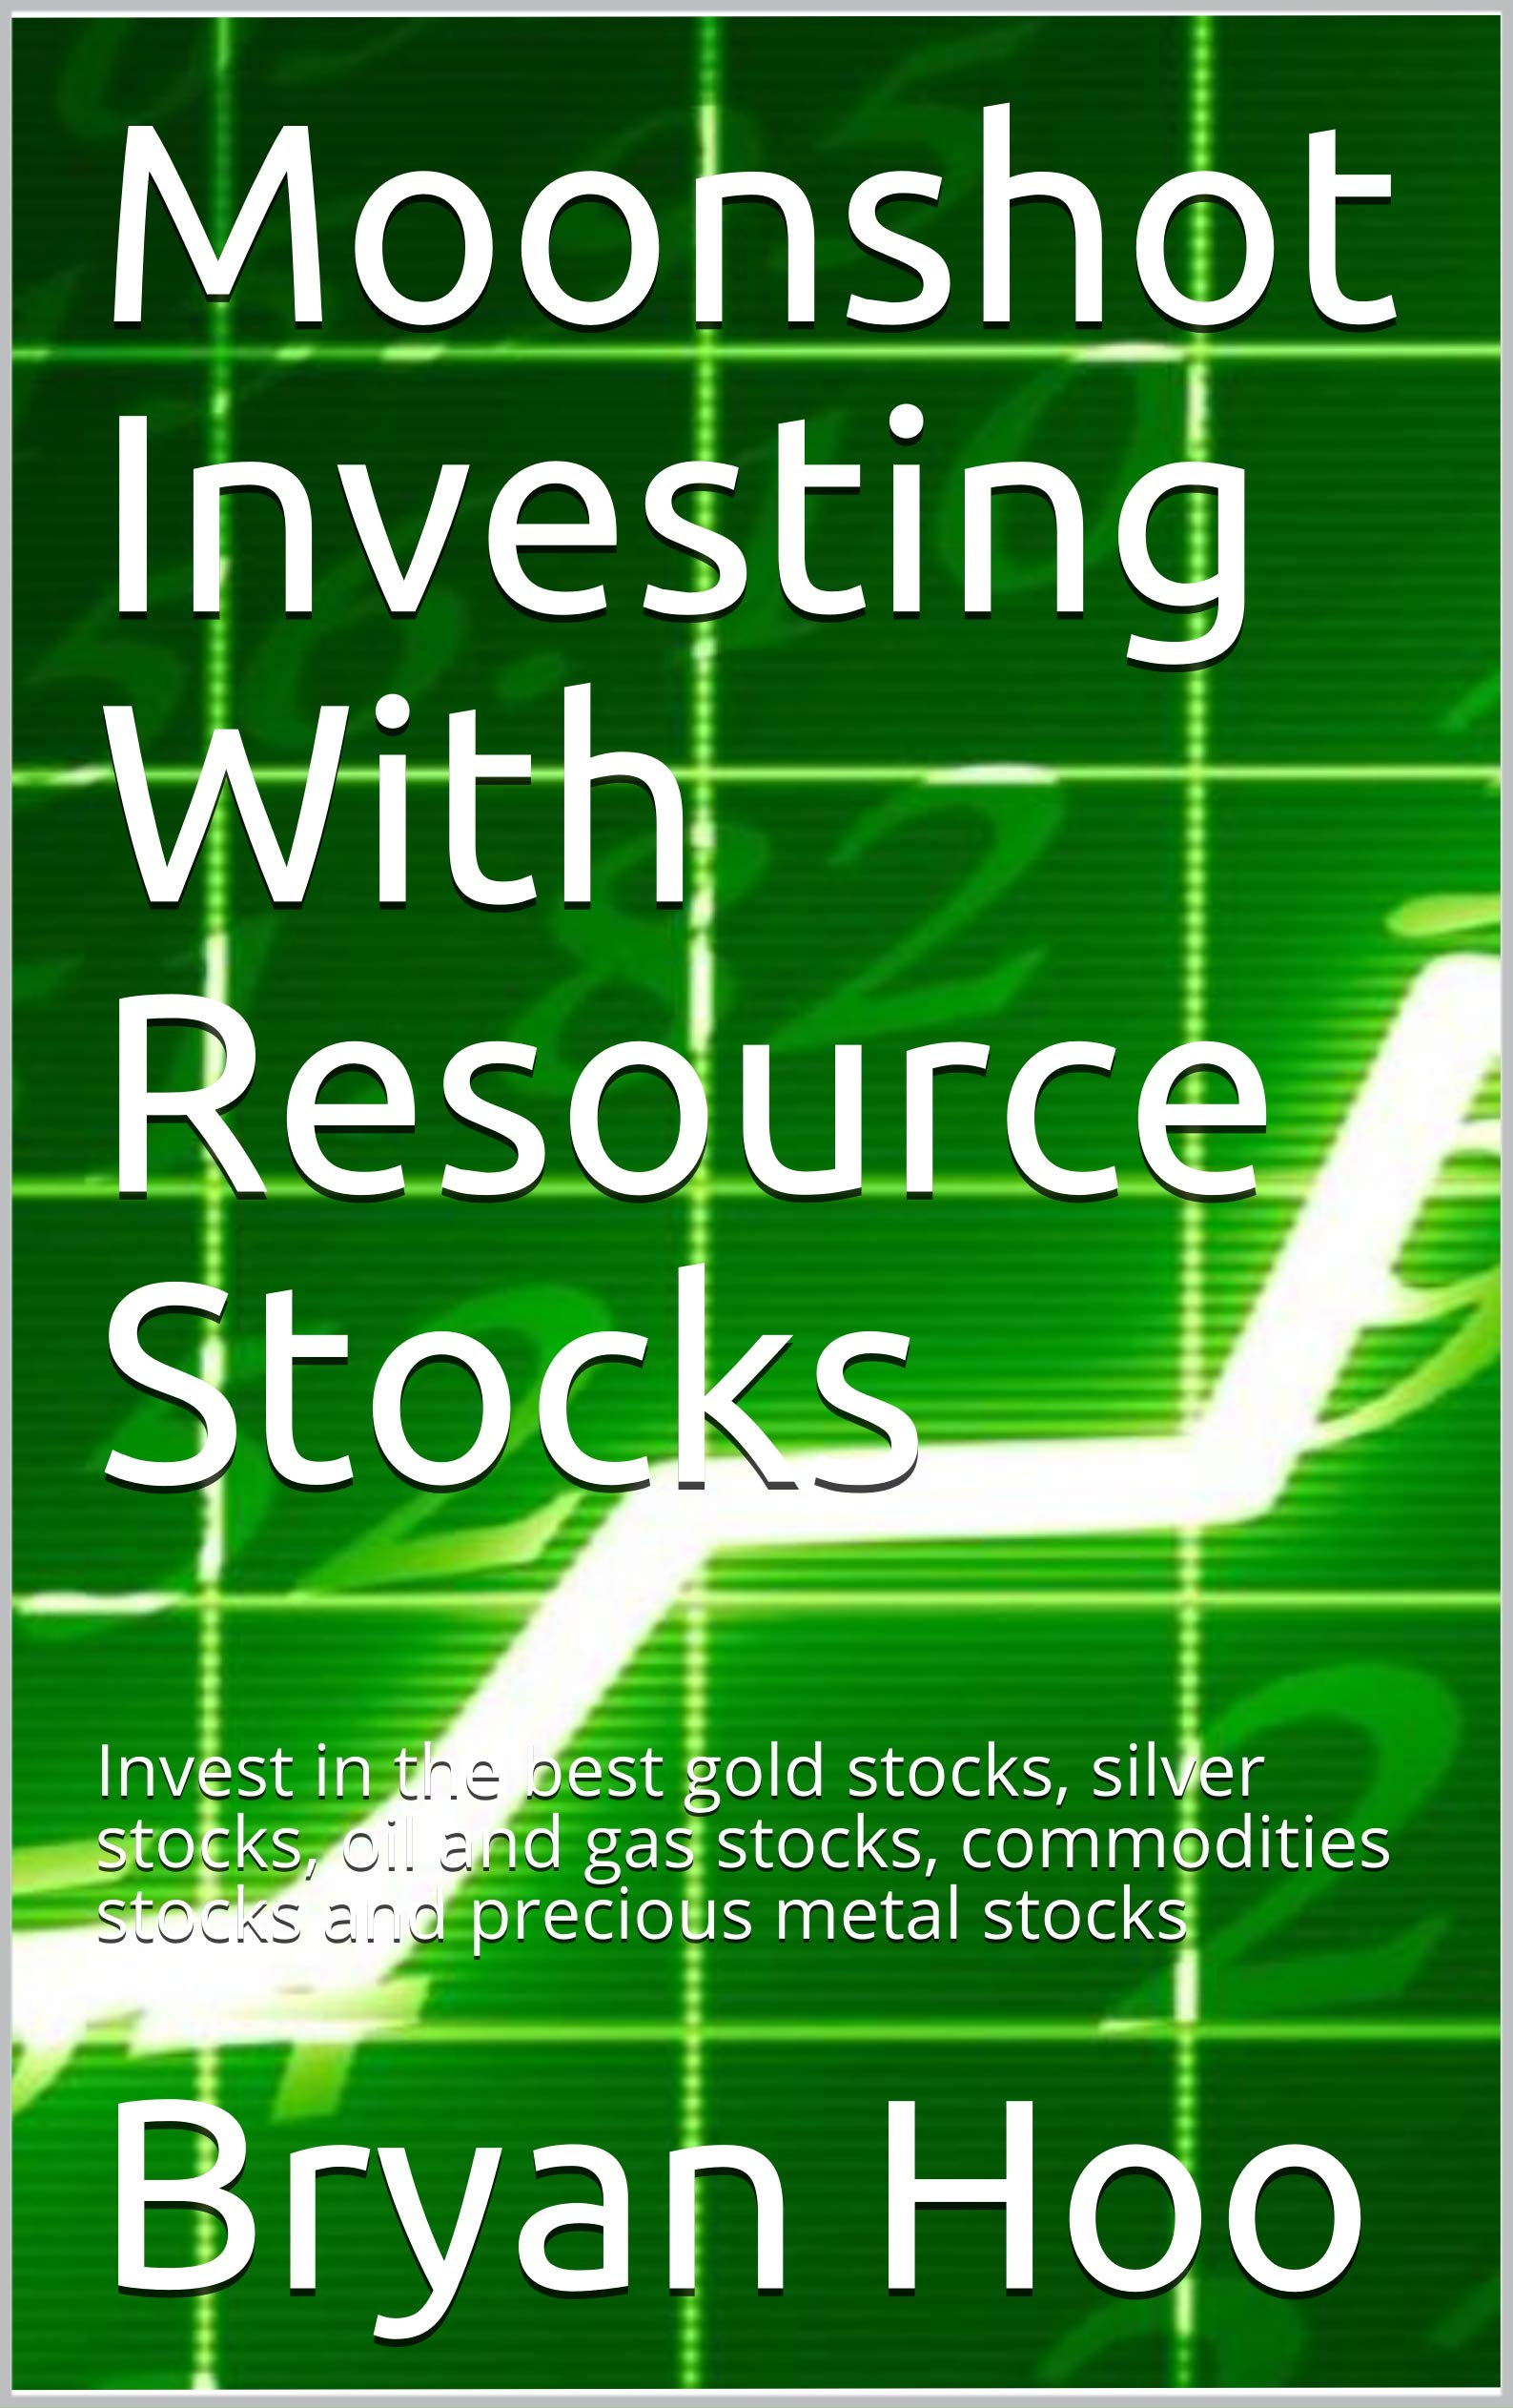 Moonshot Investing With Resource Stocks: Invest in the best gold stocks, silver stocks, oil and gas stocks, commodities stocks and precious metal stocks